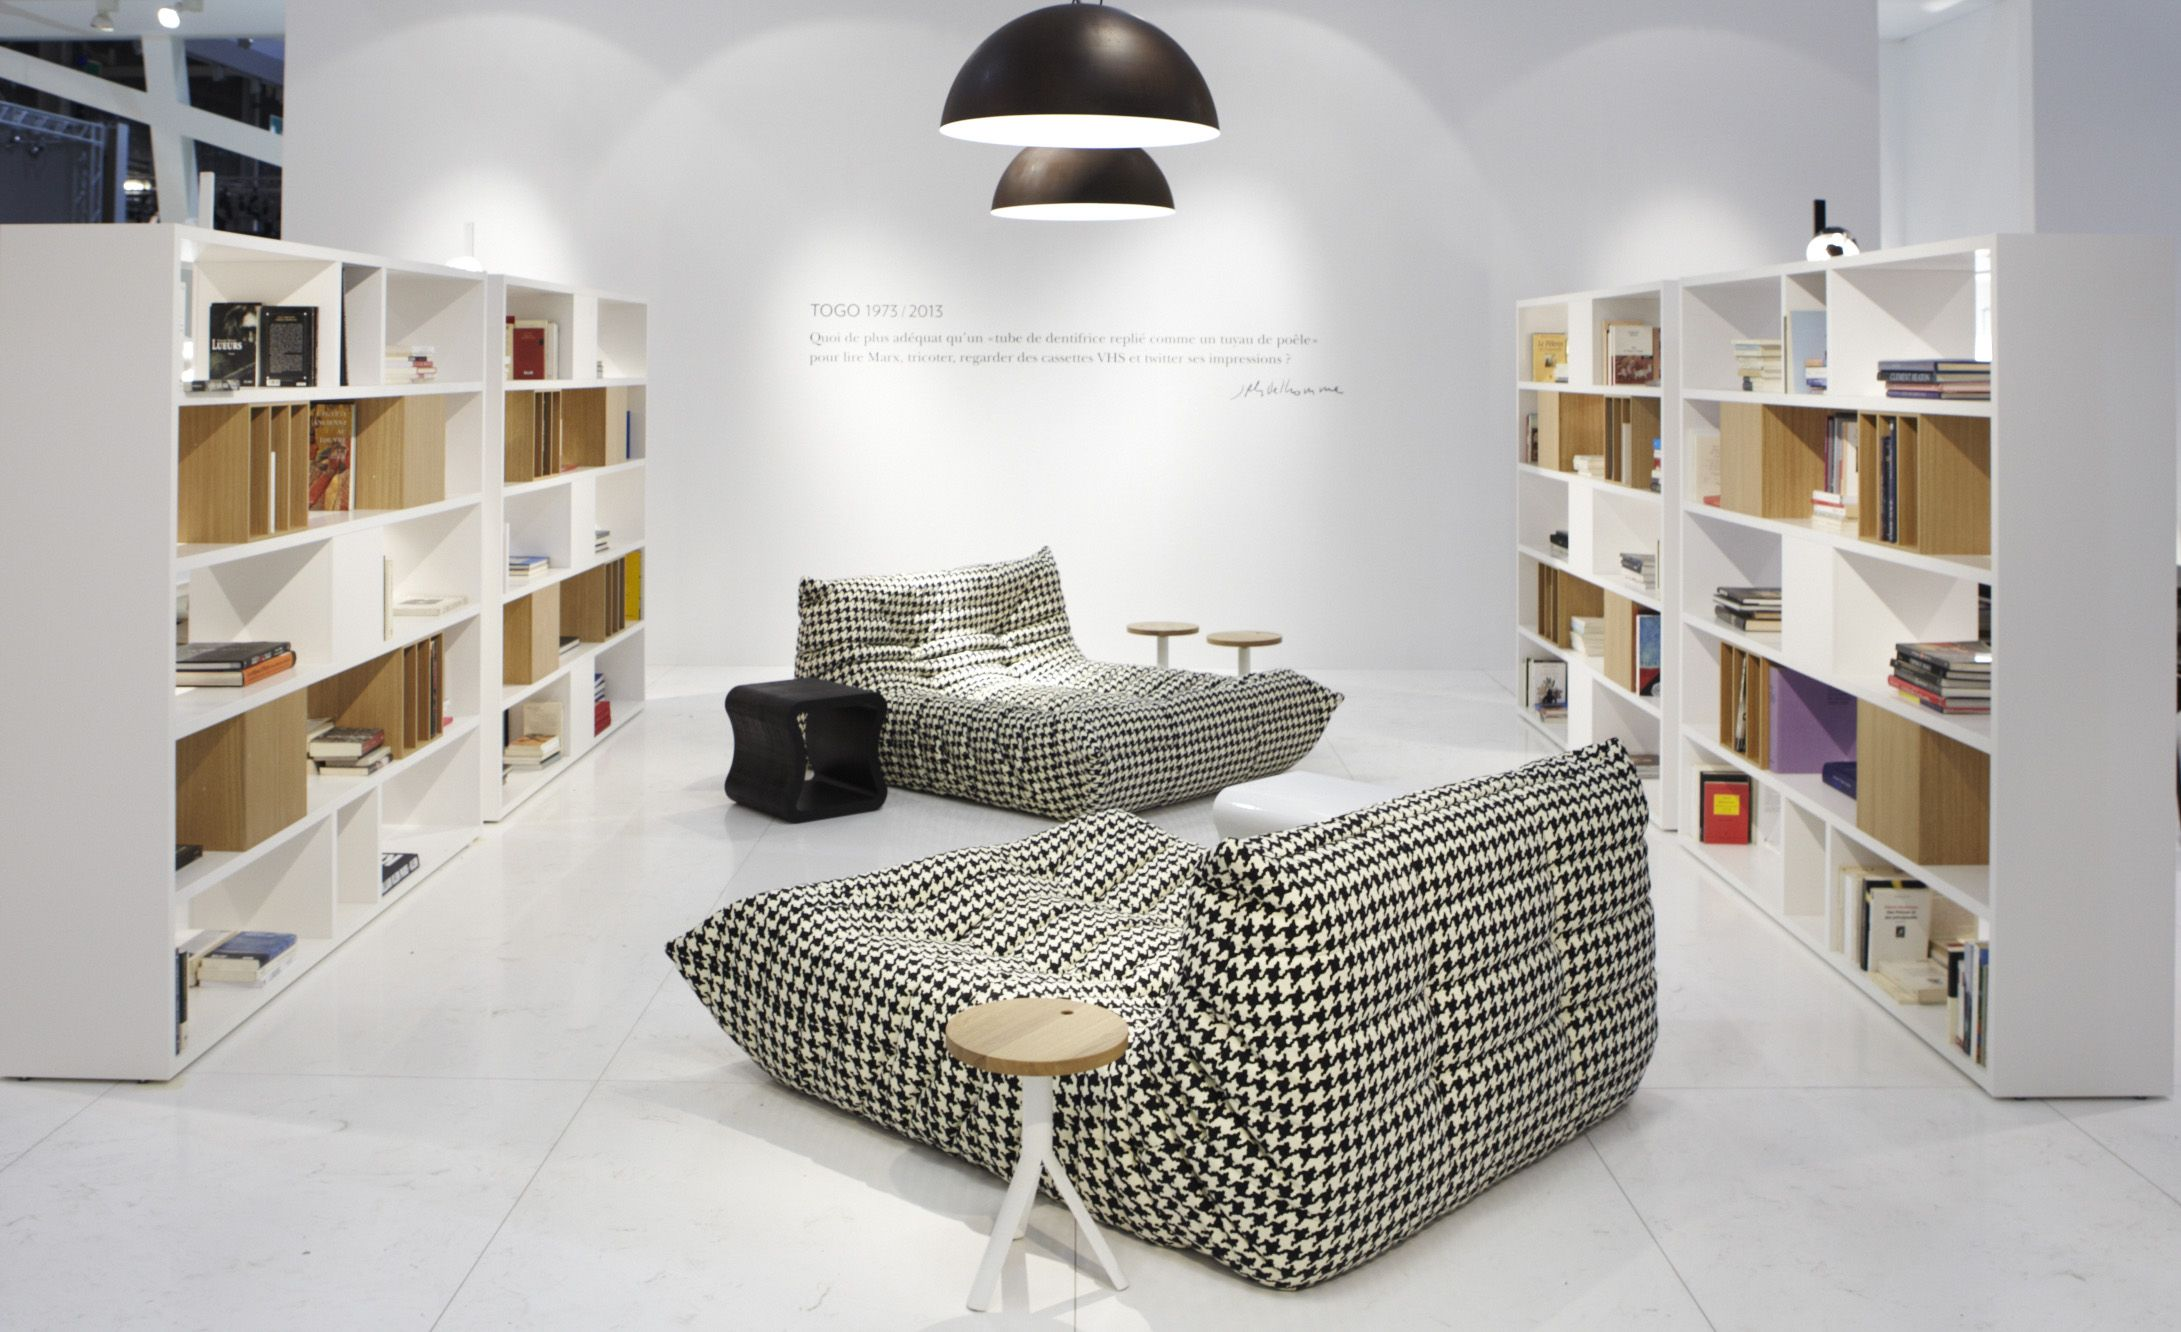 ligne roset introducing its new products imm cologne and maison objet paris 2013 living. Black Bedroom Furniture Sets. Home Design Ideas